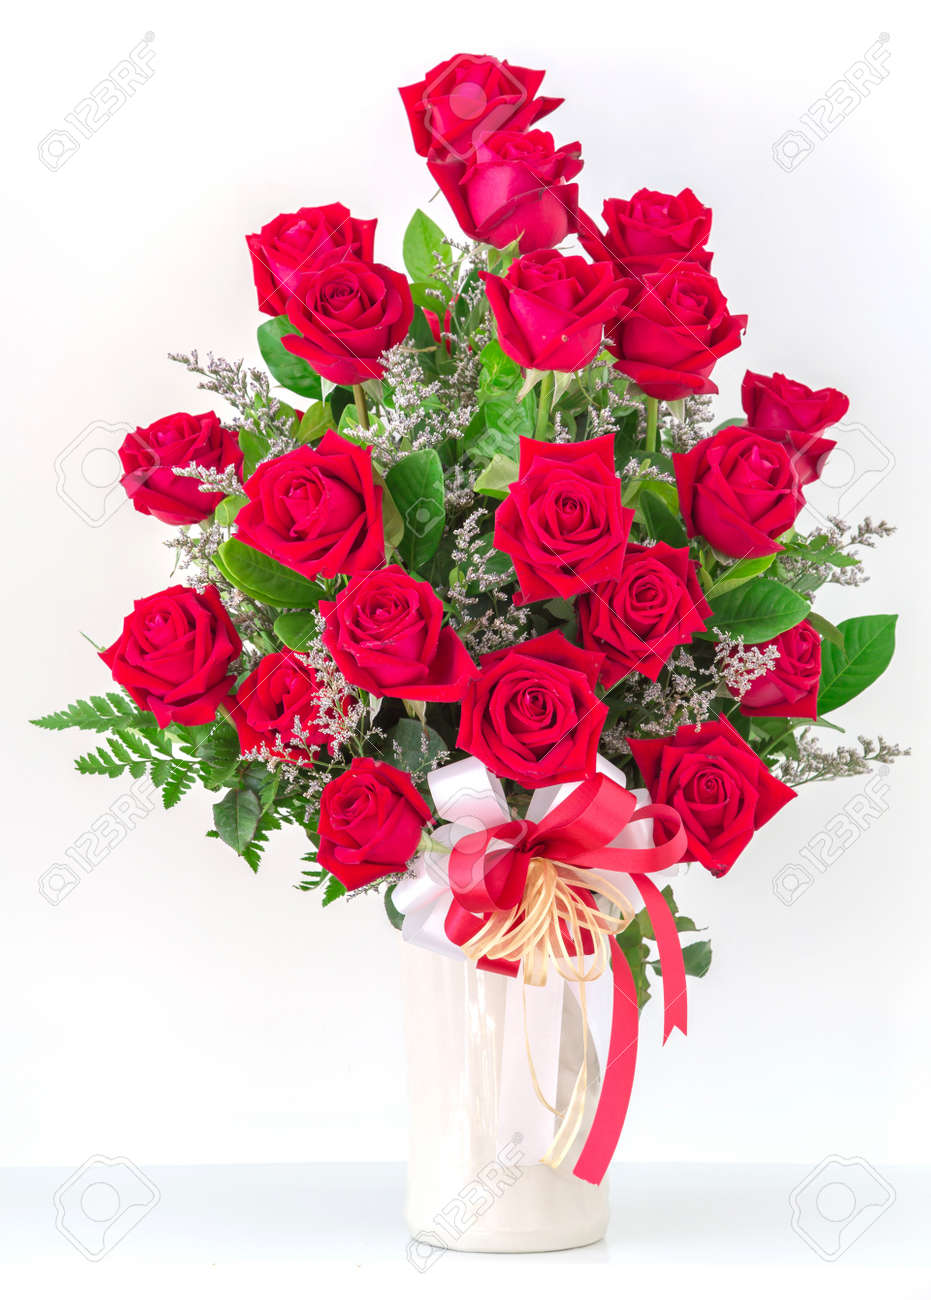 Pictures of red roses in a vase impremedia bouquet of red roses in a vase stock photo 17096601 reviewsmspy